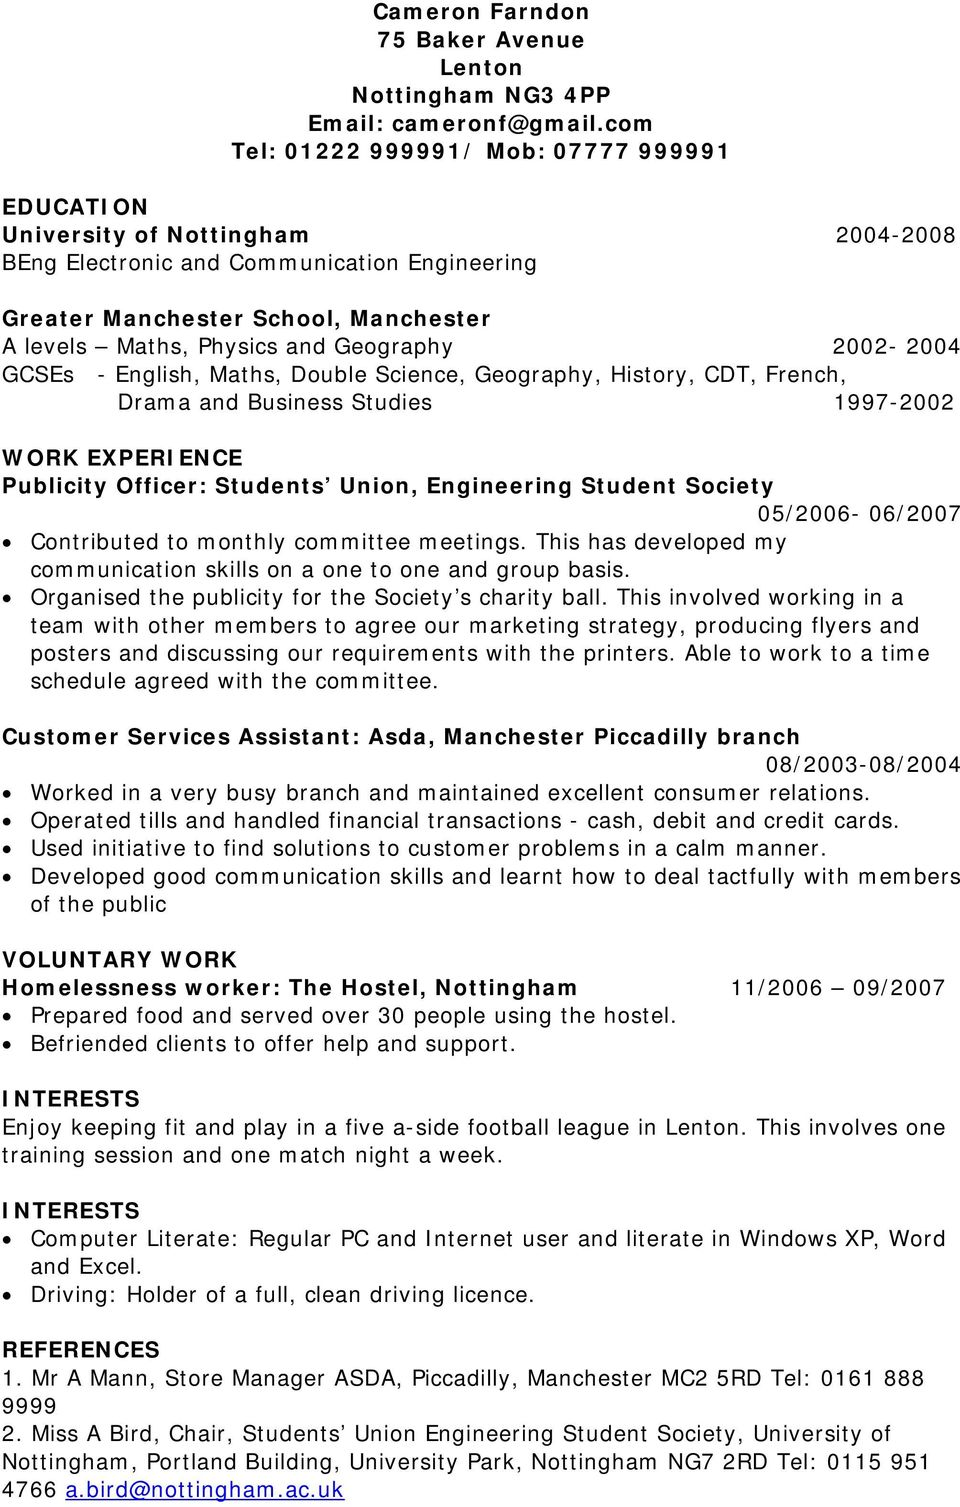 Geography 2002-2004 GCSEs - English, Maths, Double Science, Geography, History, CDT, French, Drama and Business Studies 1997-2002 WORK EXPERIENCE Publicity Officer: Students Union, Engineering